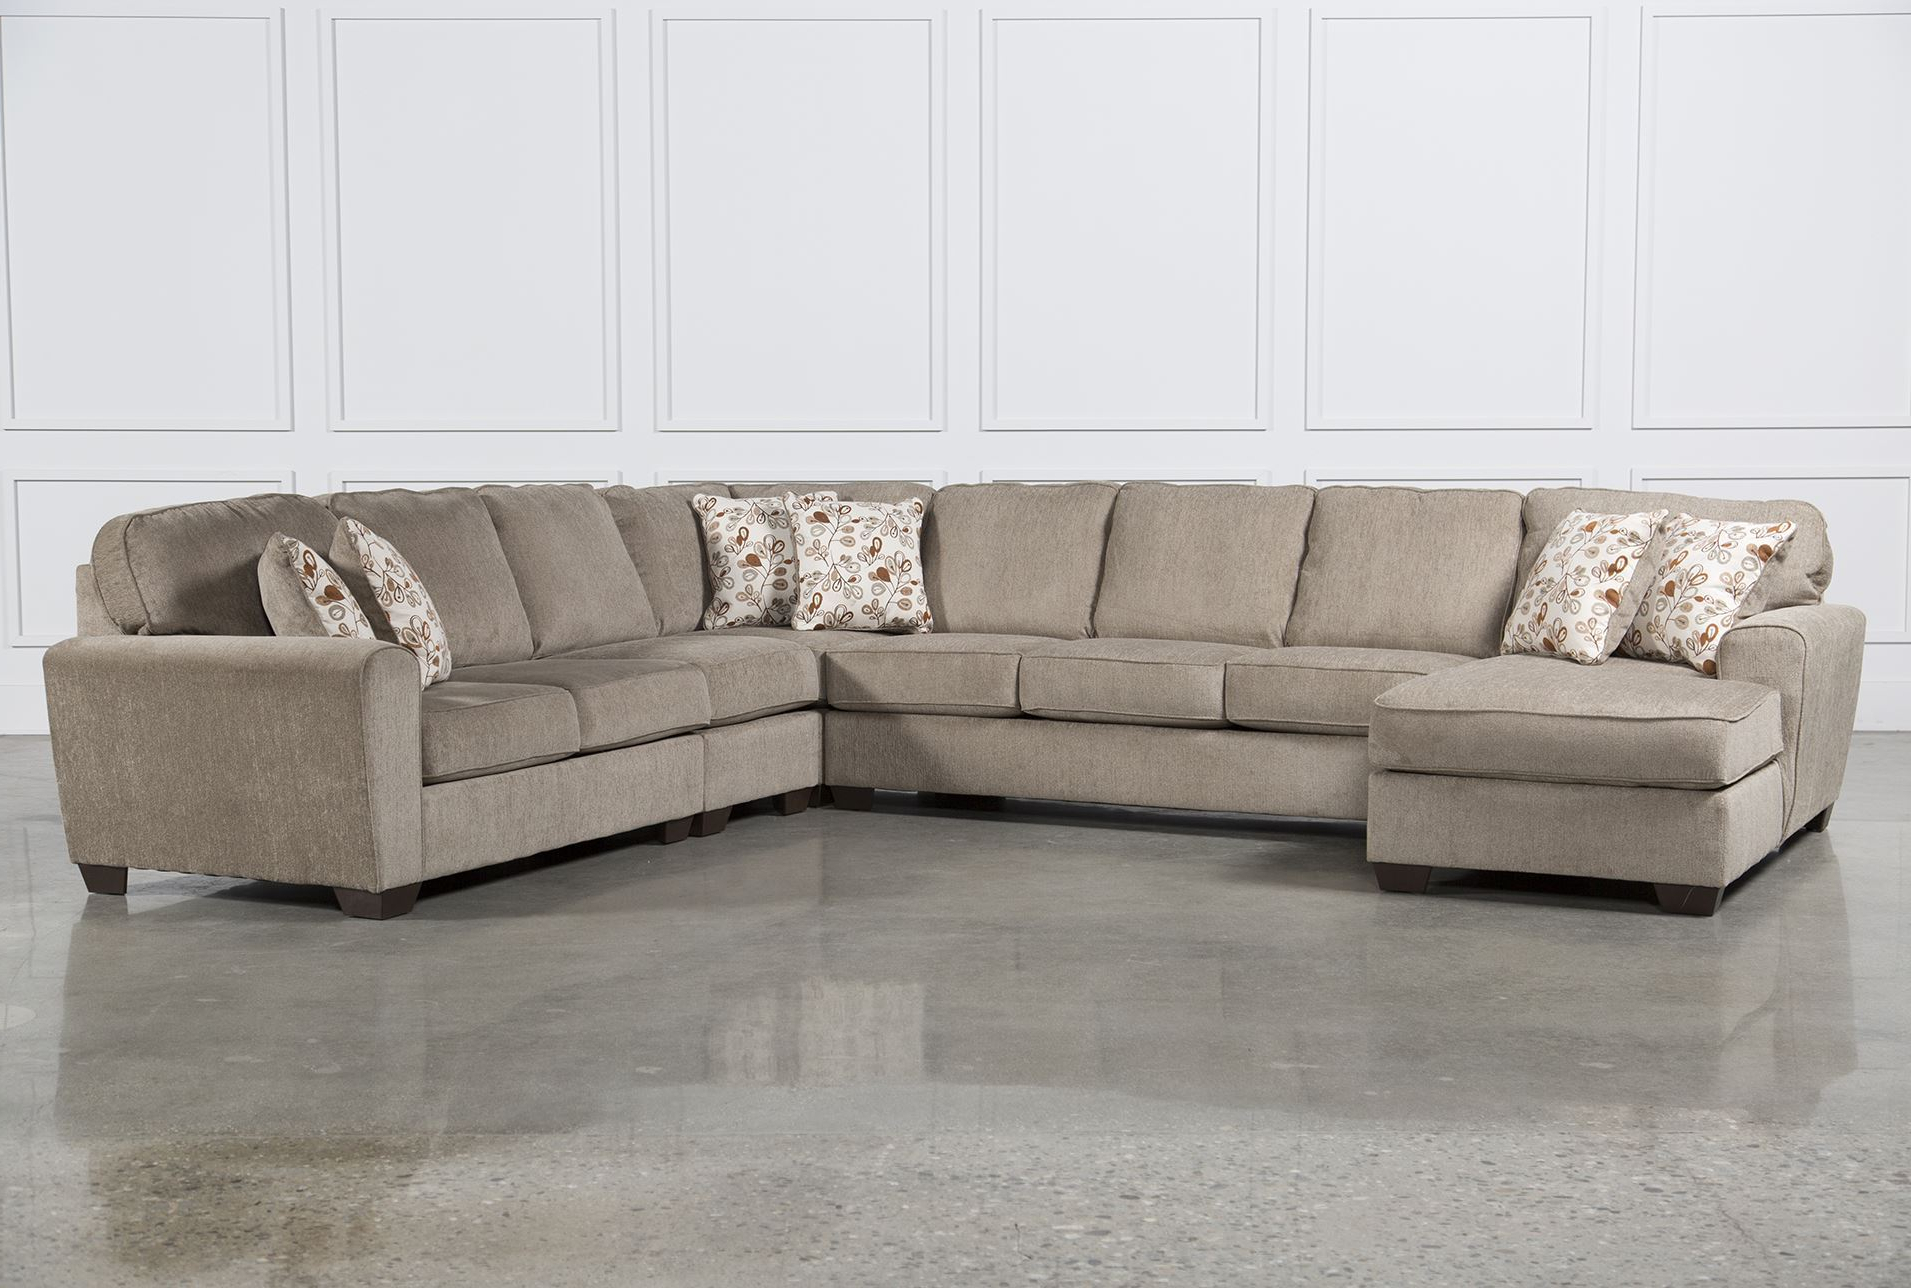 Best Ideas Of Laf Chaise On Gordon 3 Piece Sectional W Laf Chaise Pertaining To Most Up To Date Gordon 3 Piece Sectionals With Raf Chaise (View 13 of 20)